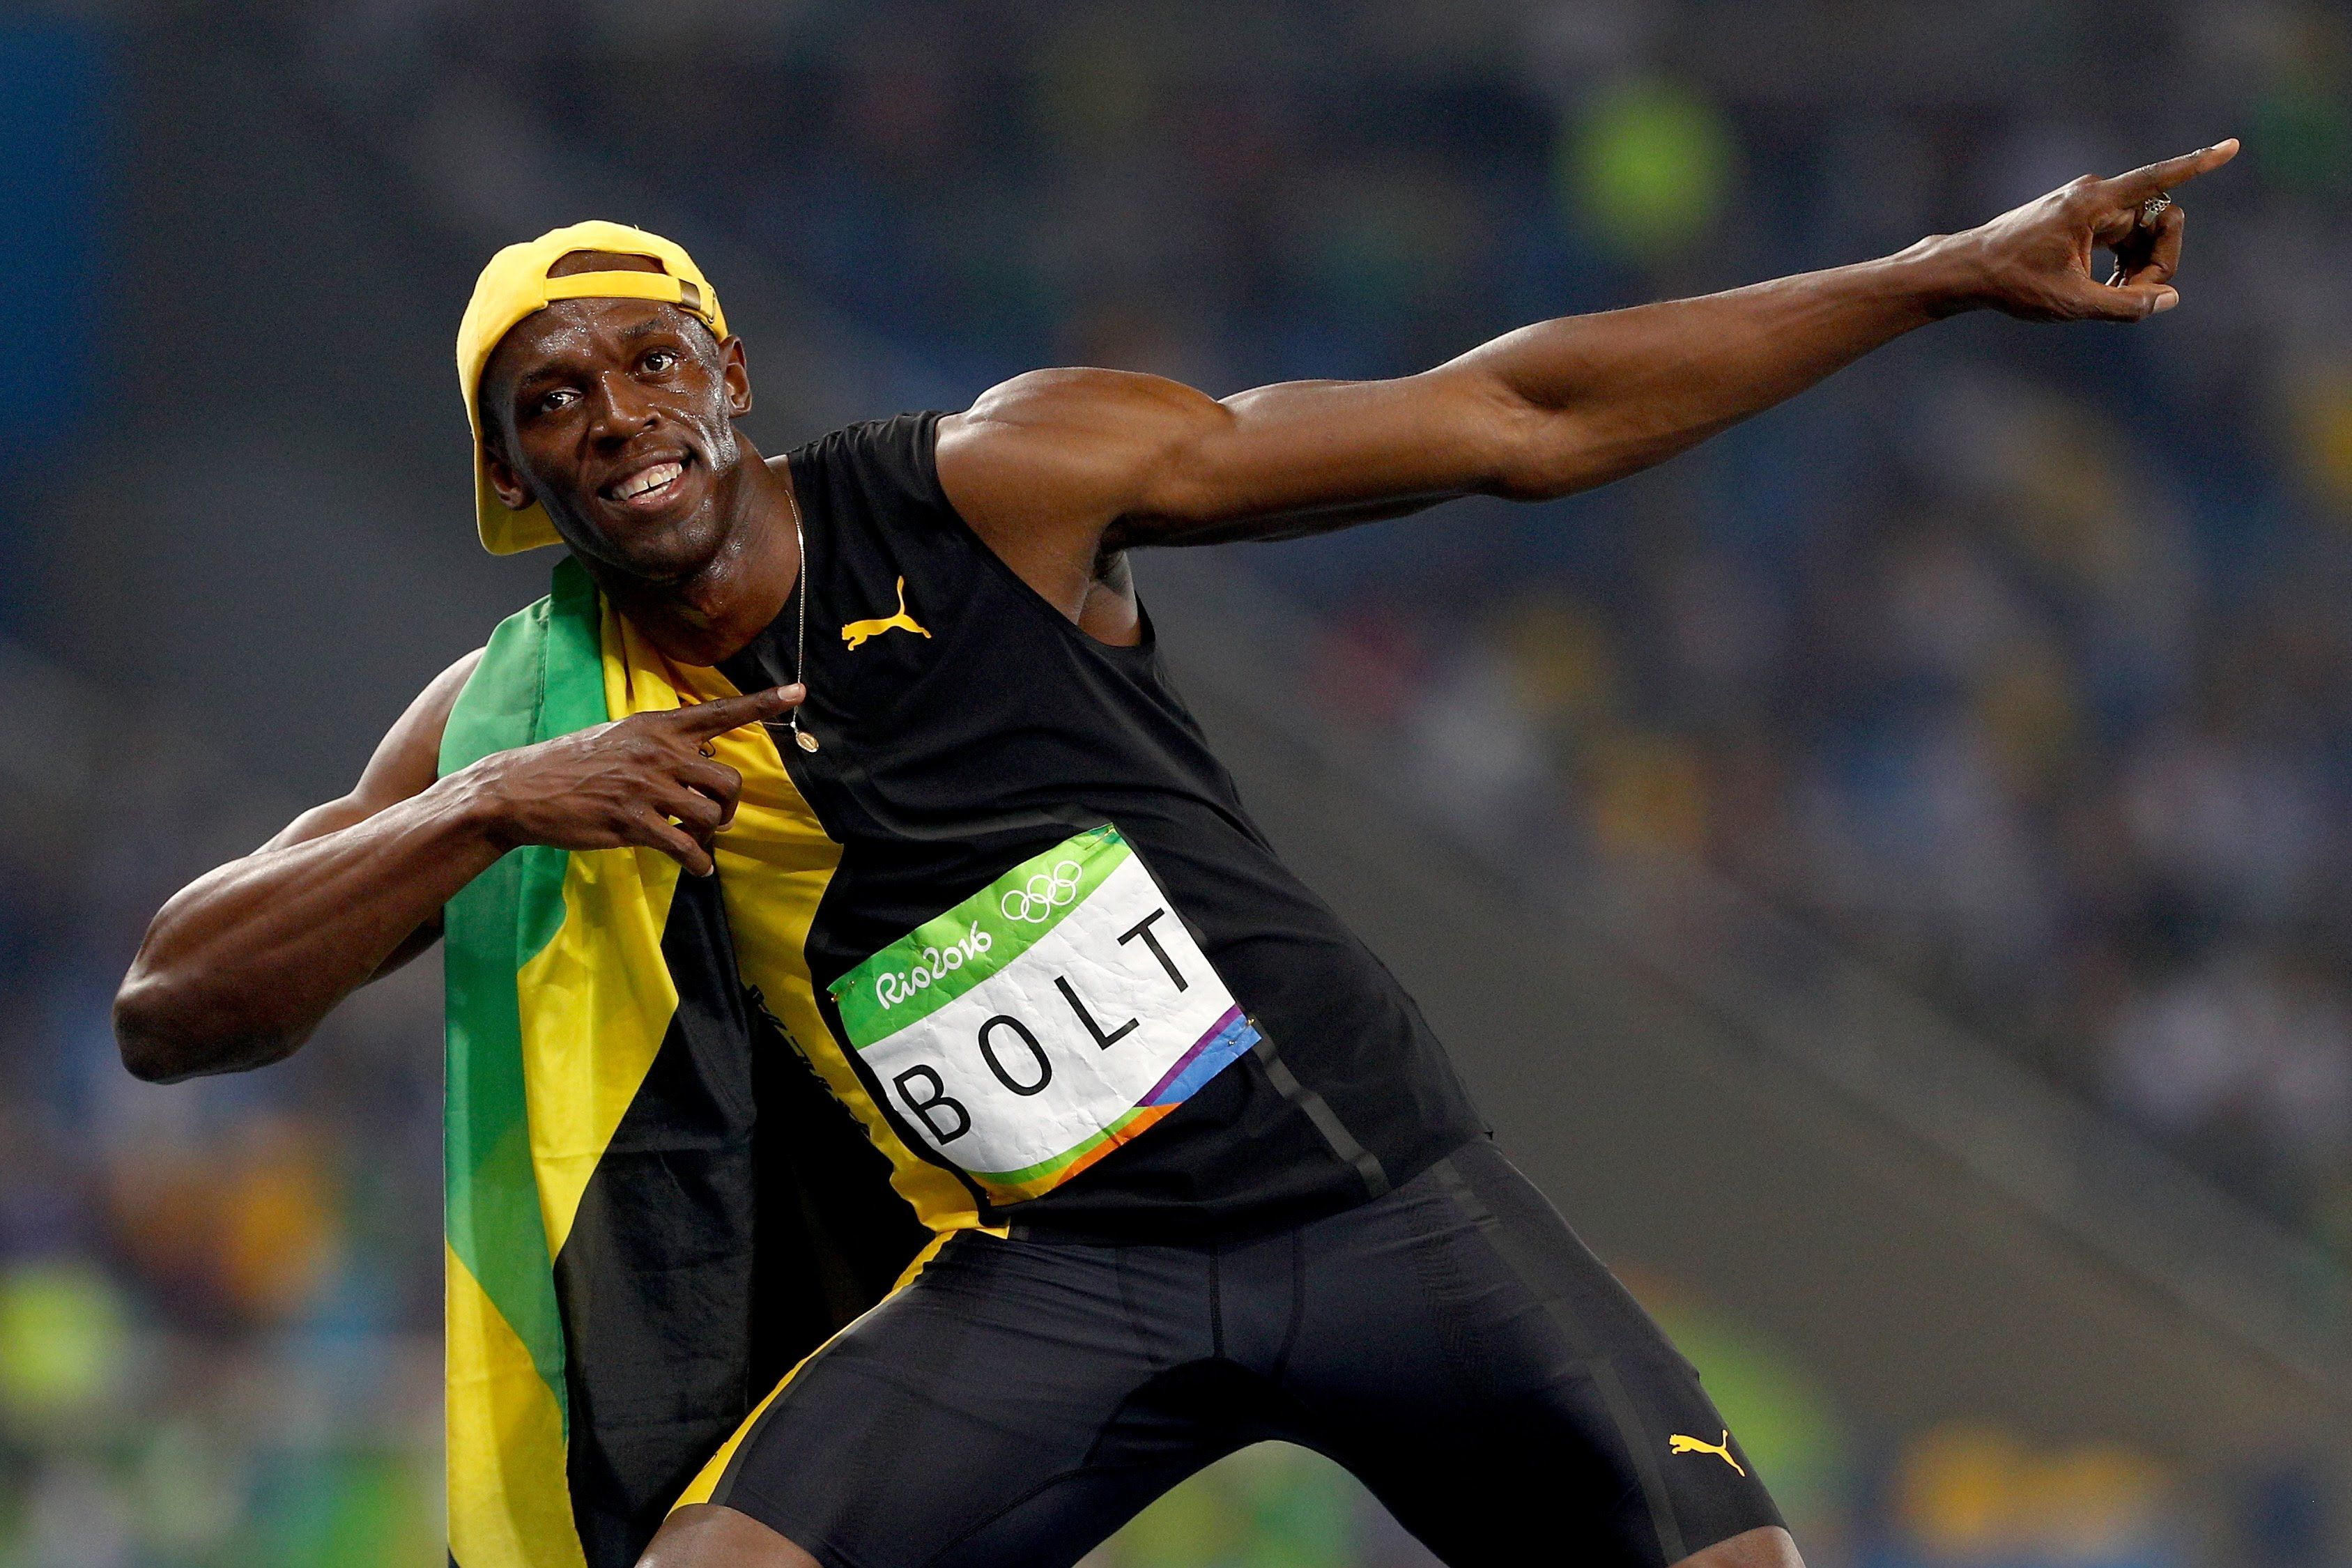 Bolt wins 100 gold remains the fastest man in the world ...